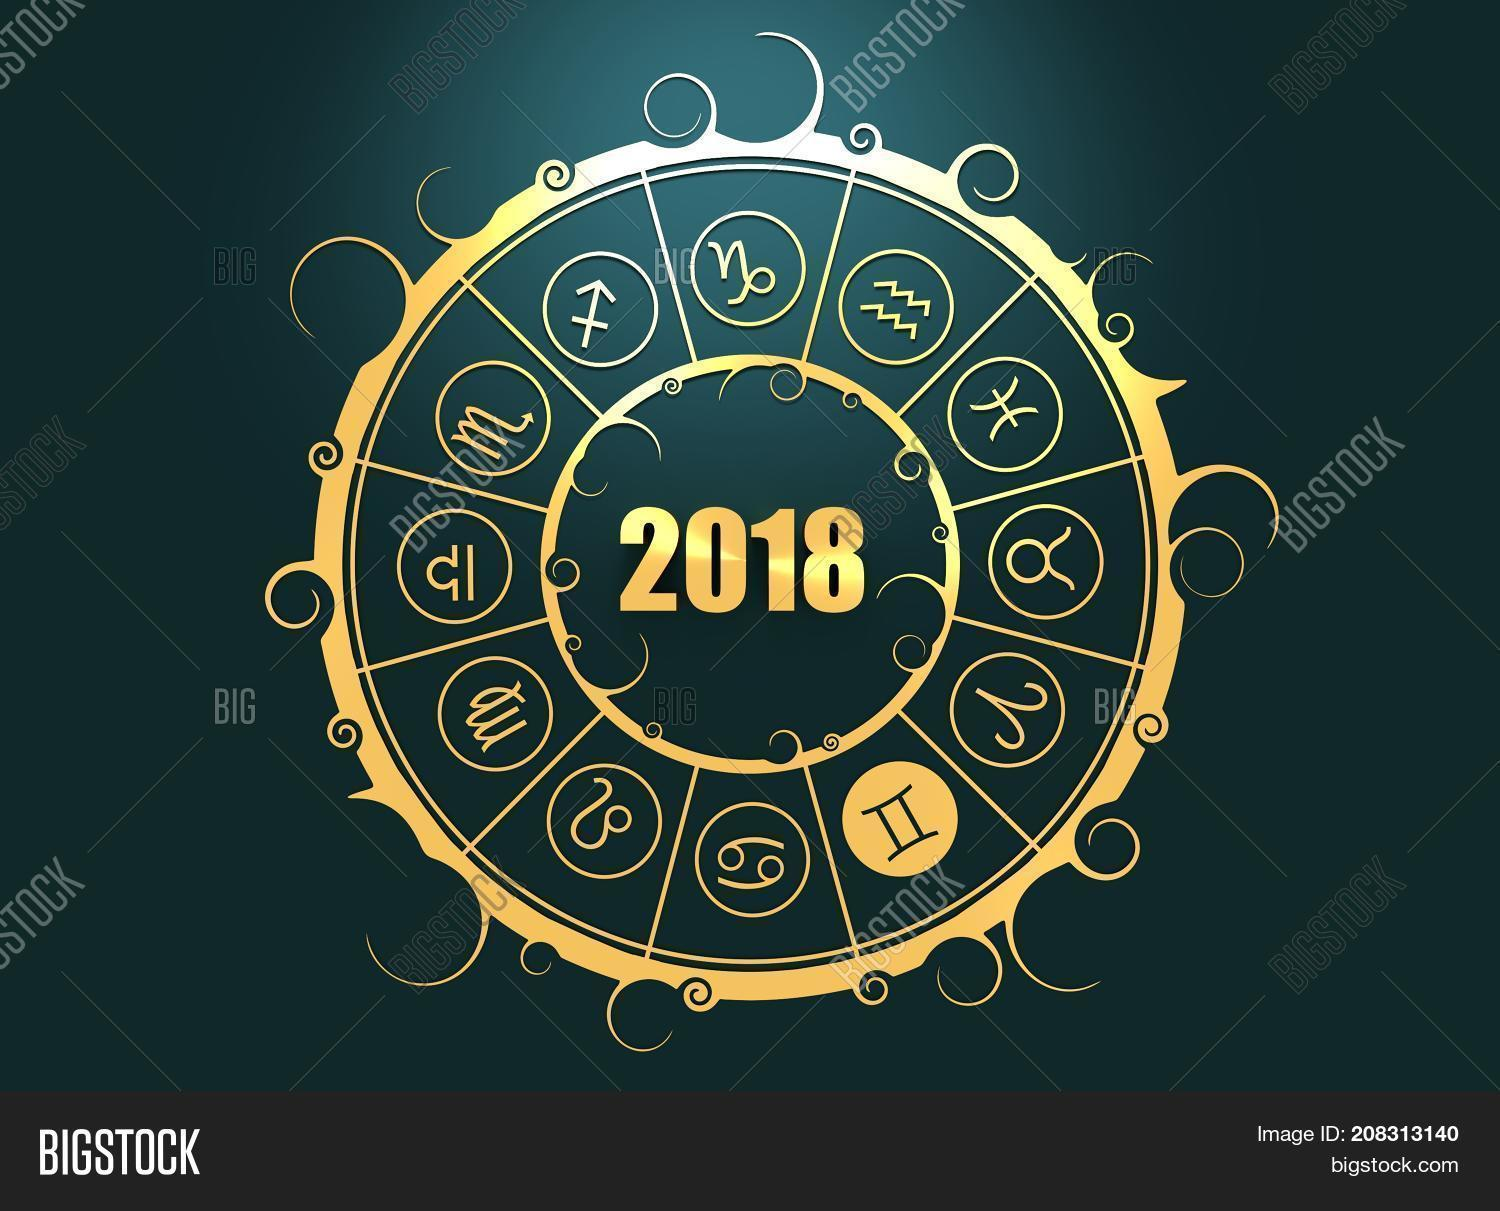 Astrological symbols image photo free trial bigstock astrological symbols in the circle gemini sign celebration card template zodiac circle with ccuart Images